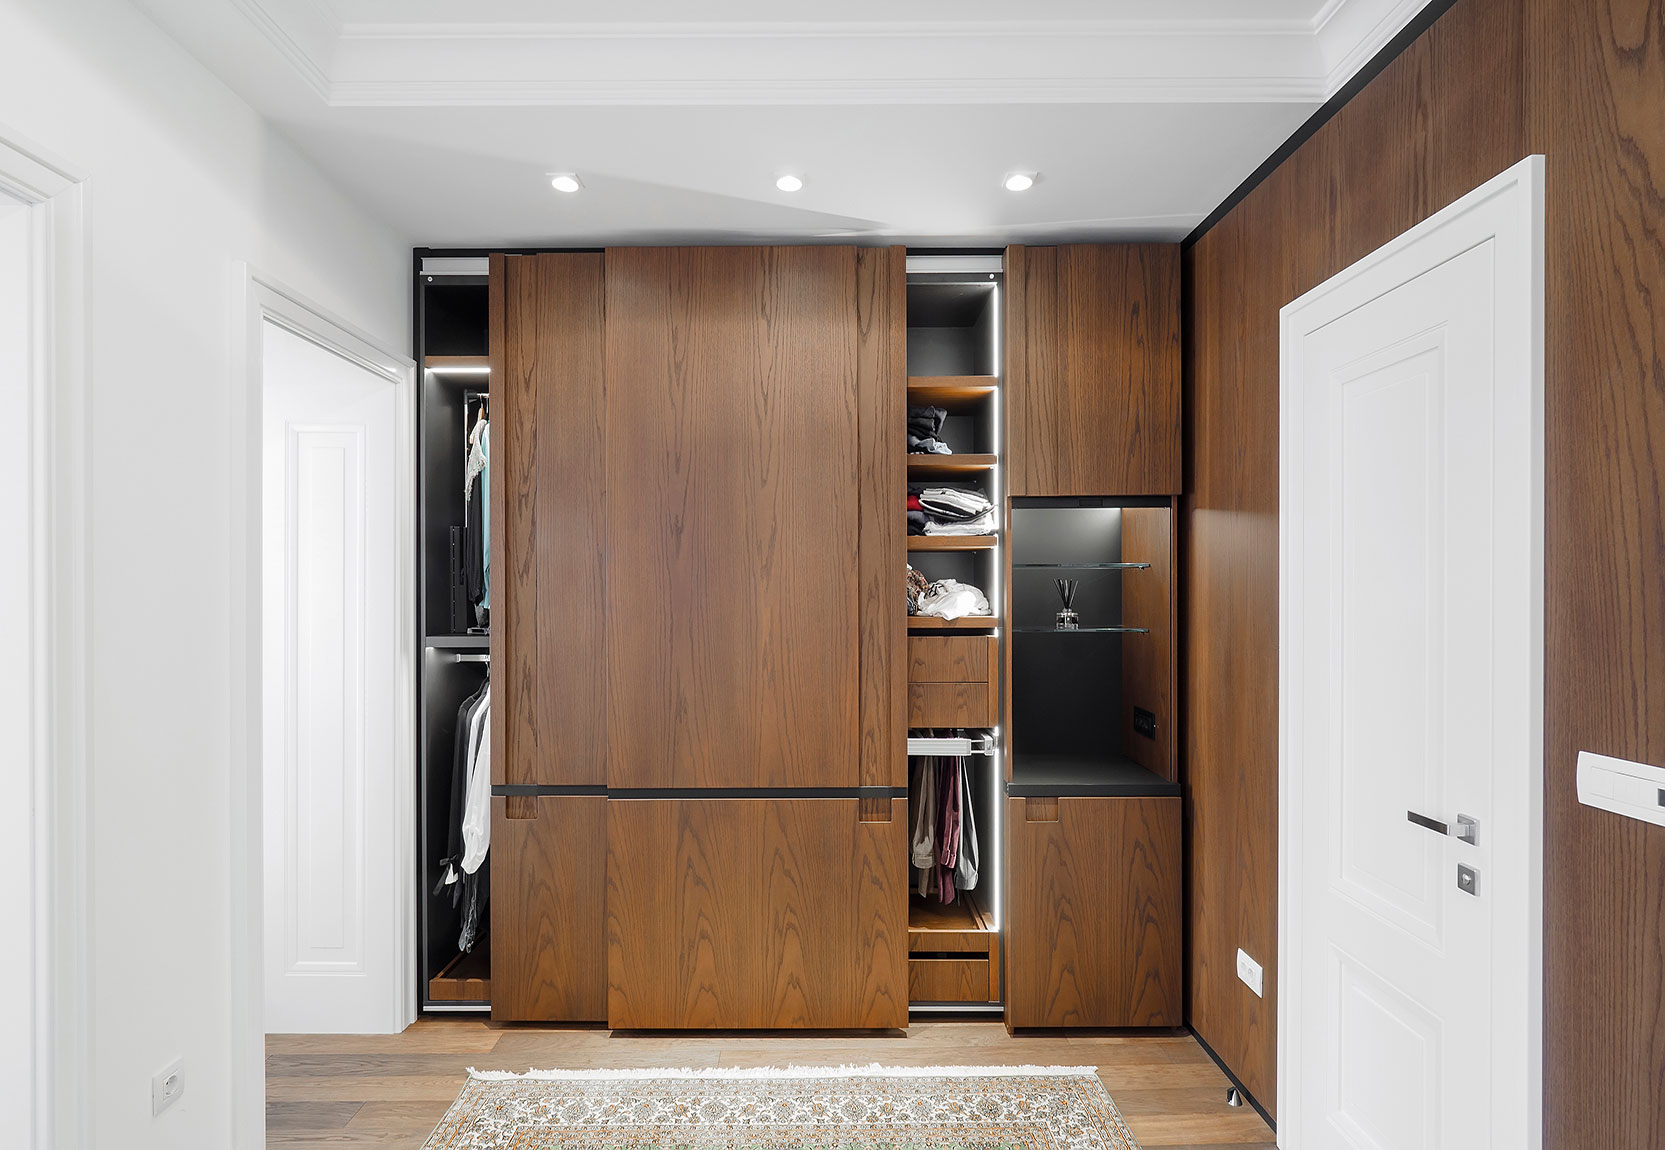 Modular Wardrobe Designs Bedroom Wardrobes Designs In